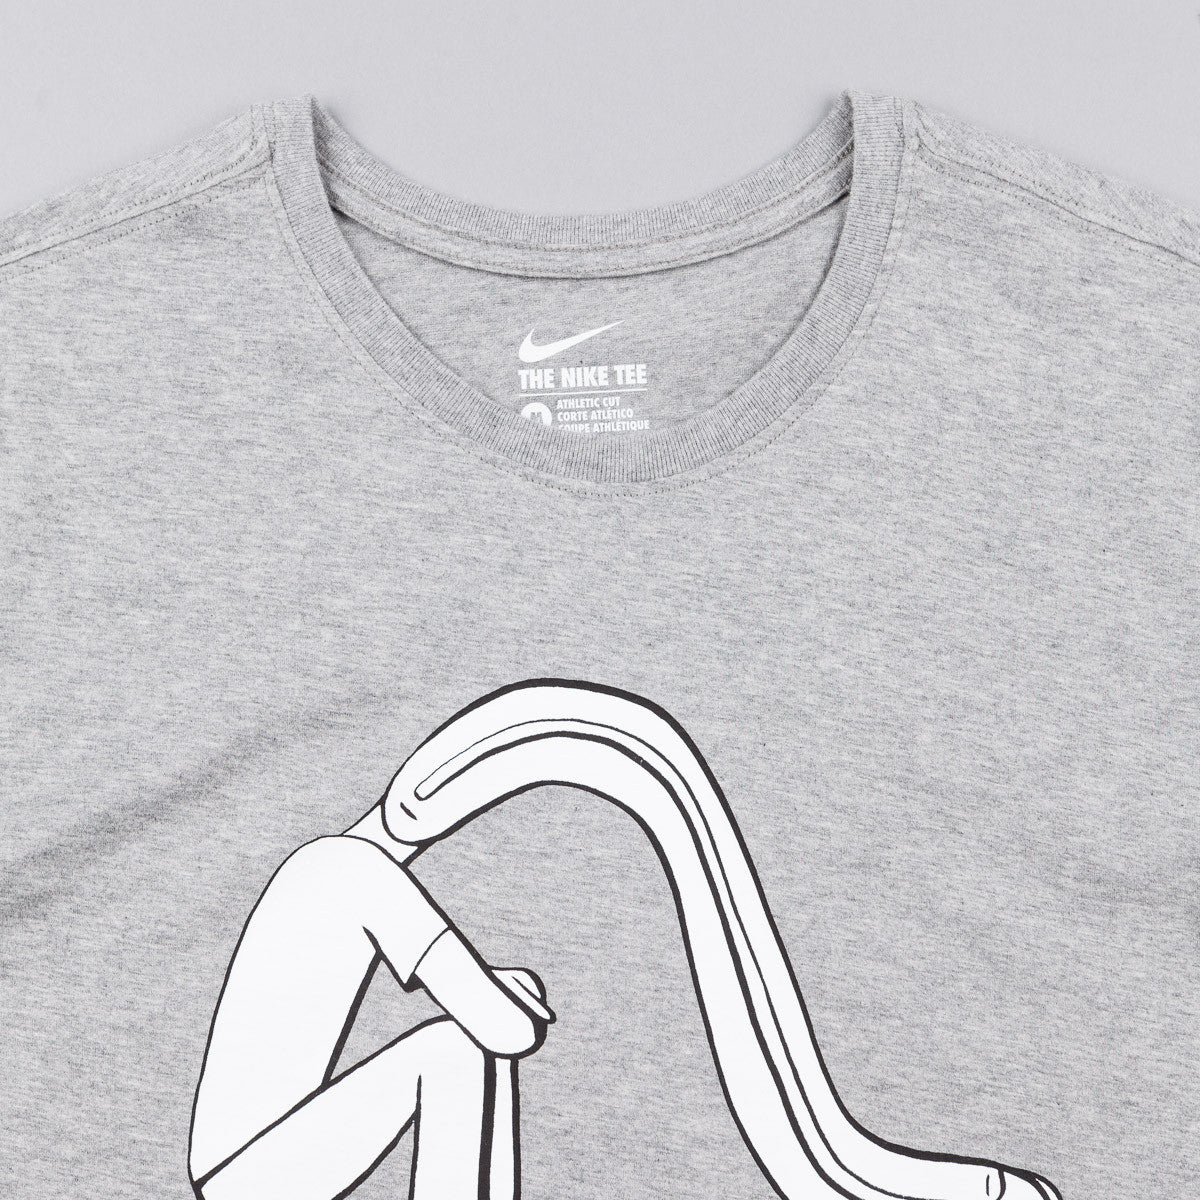 Nike SB Geoff McFetridge 3 T-Shirt - Dark Grey Heather / White